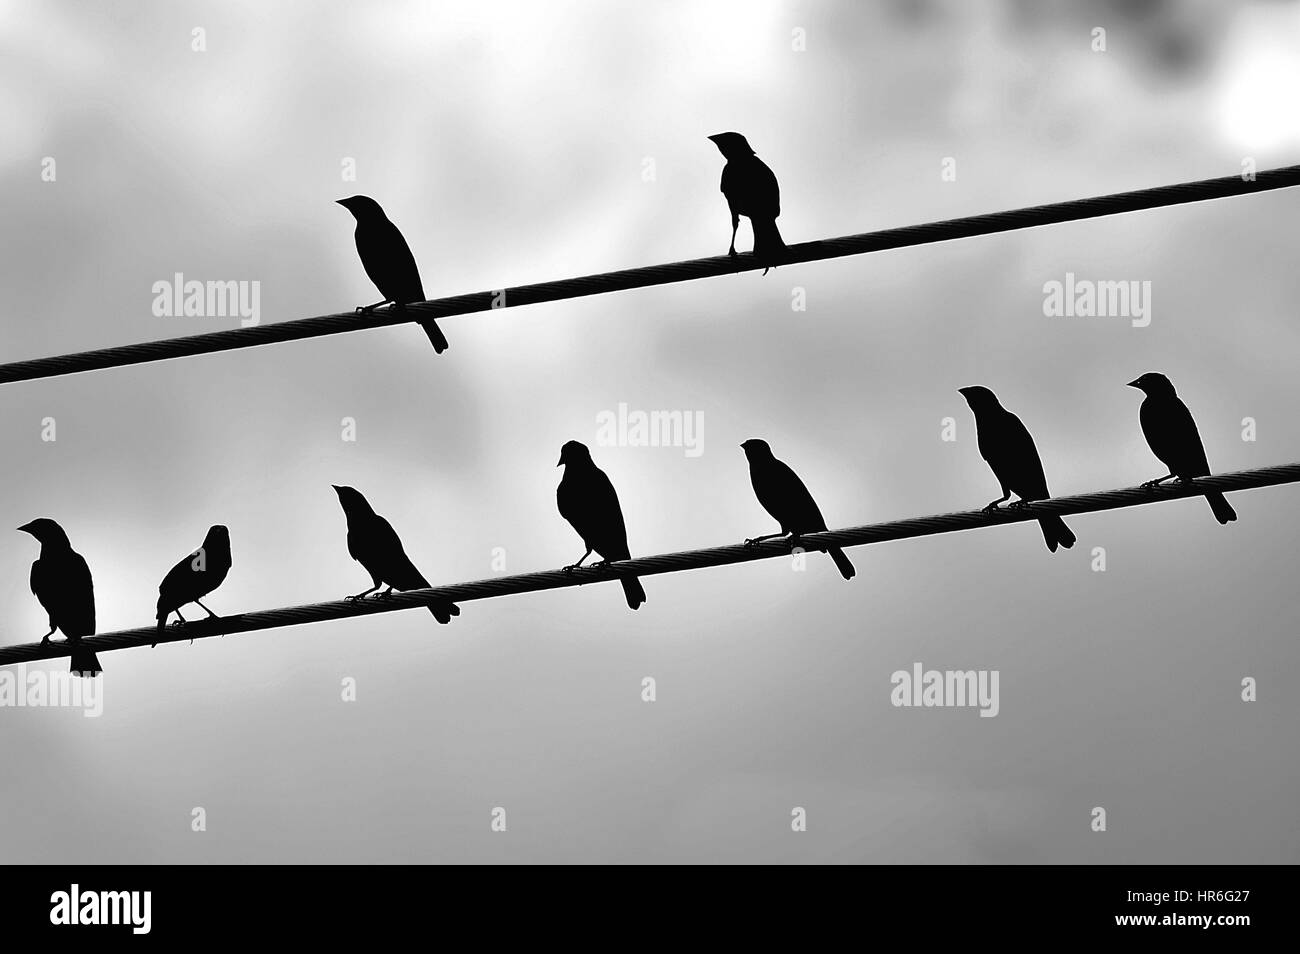 Black birds on a power line over a cloudy sky background Stock Photo ...